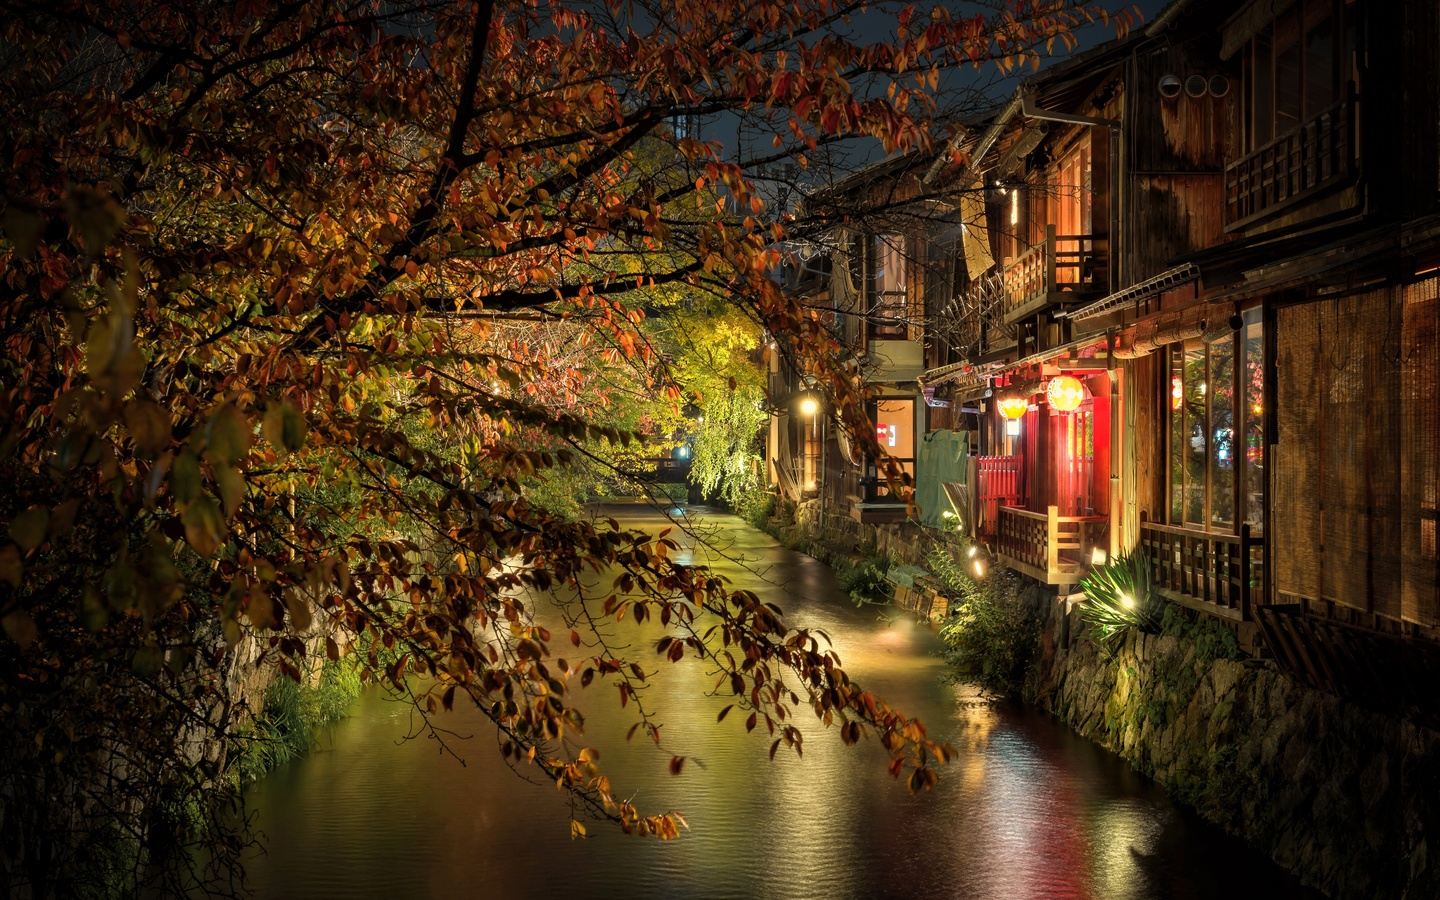 kyoto, evening, night, kyoto streets, japanese city, lights, japan